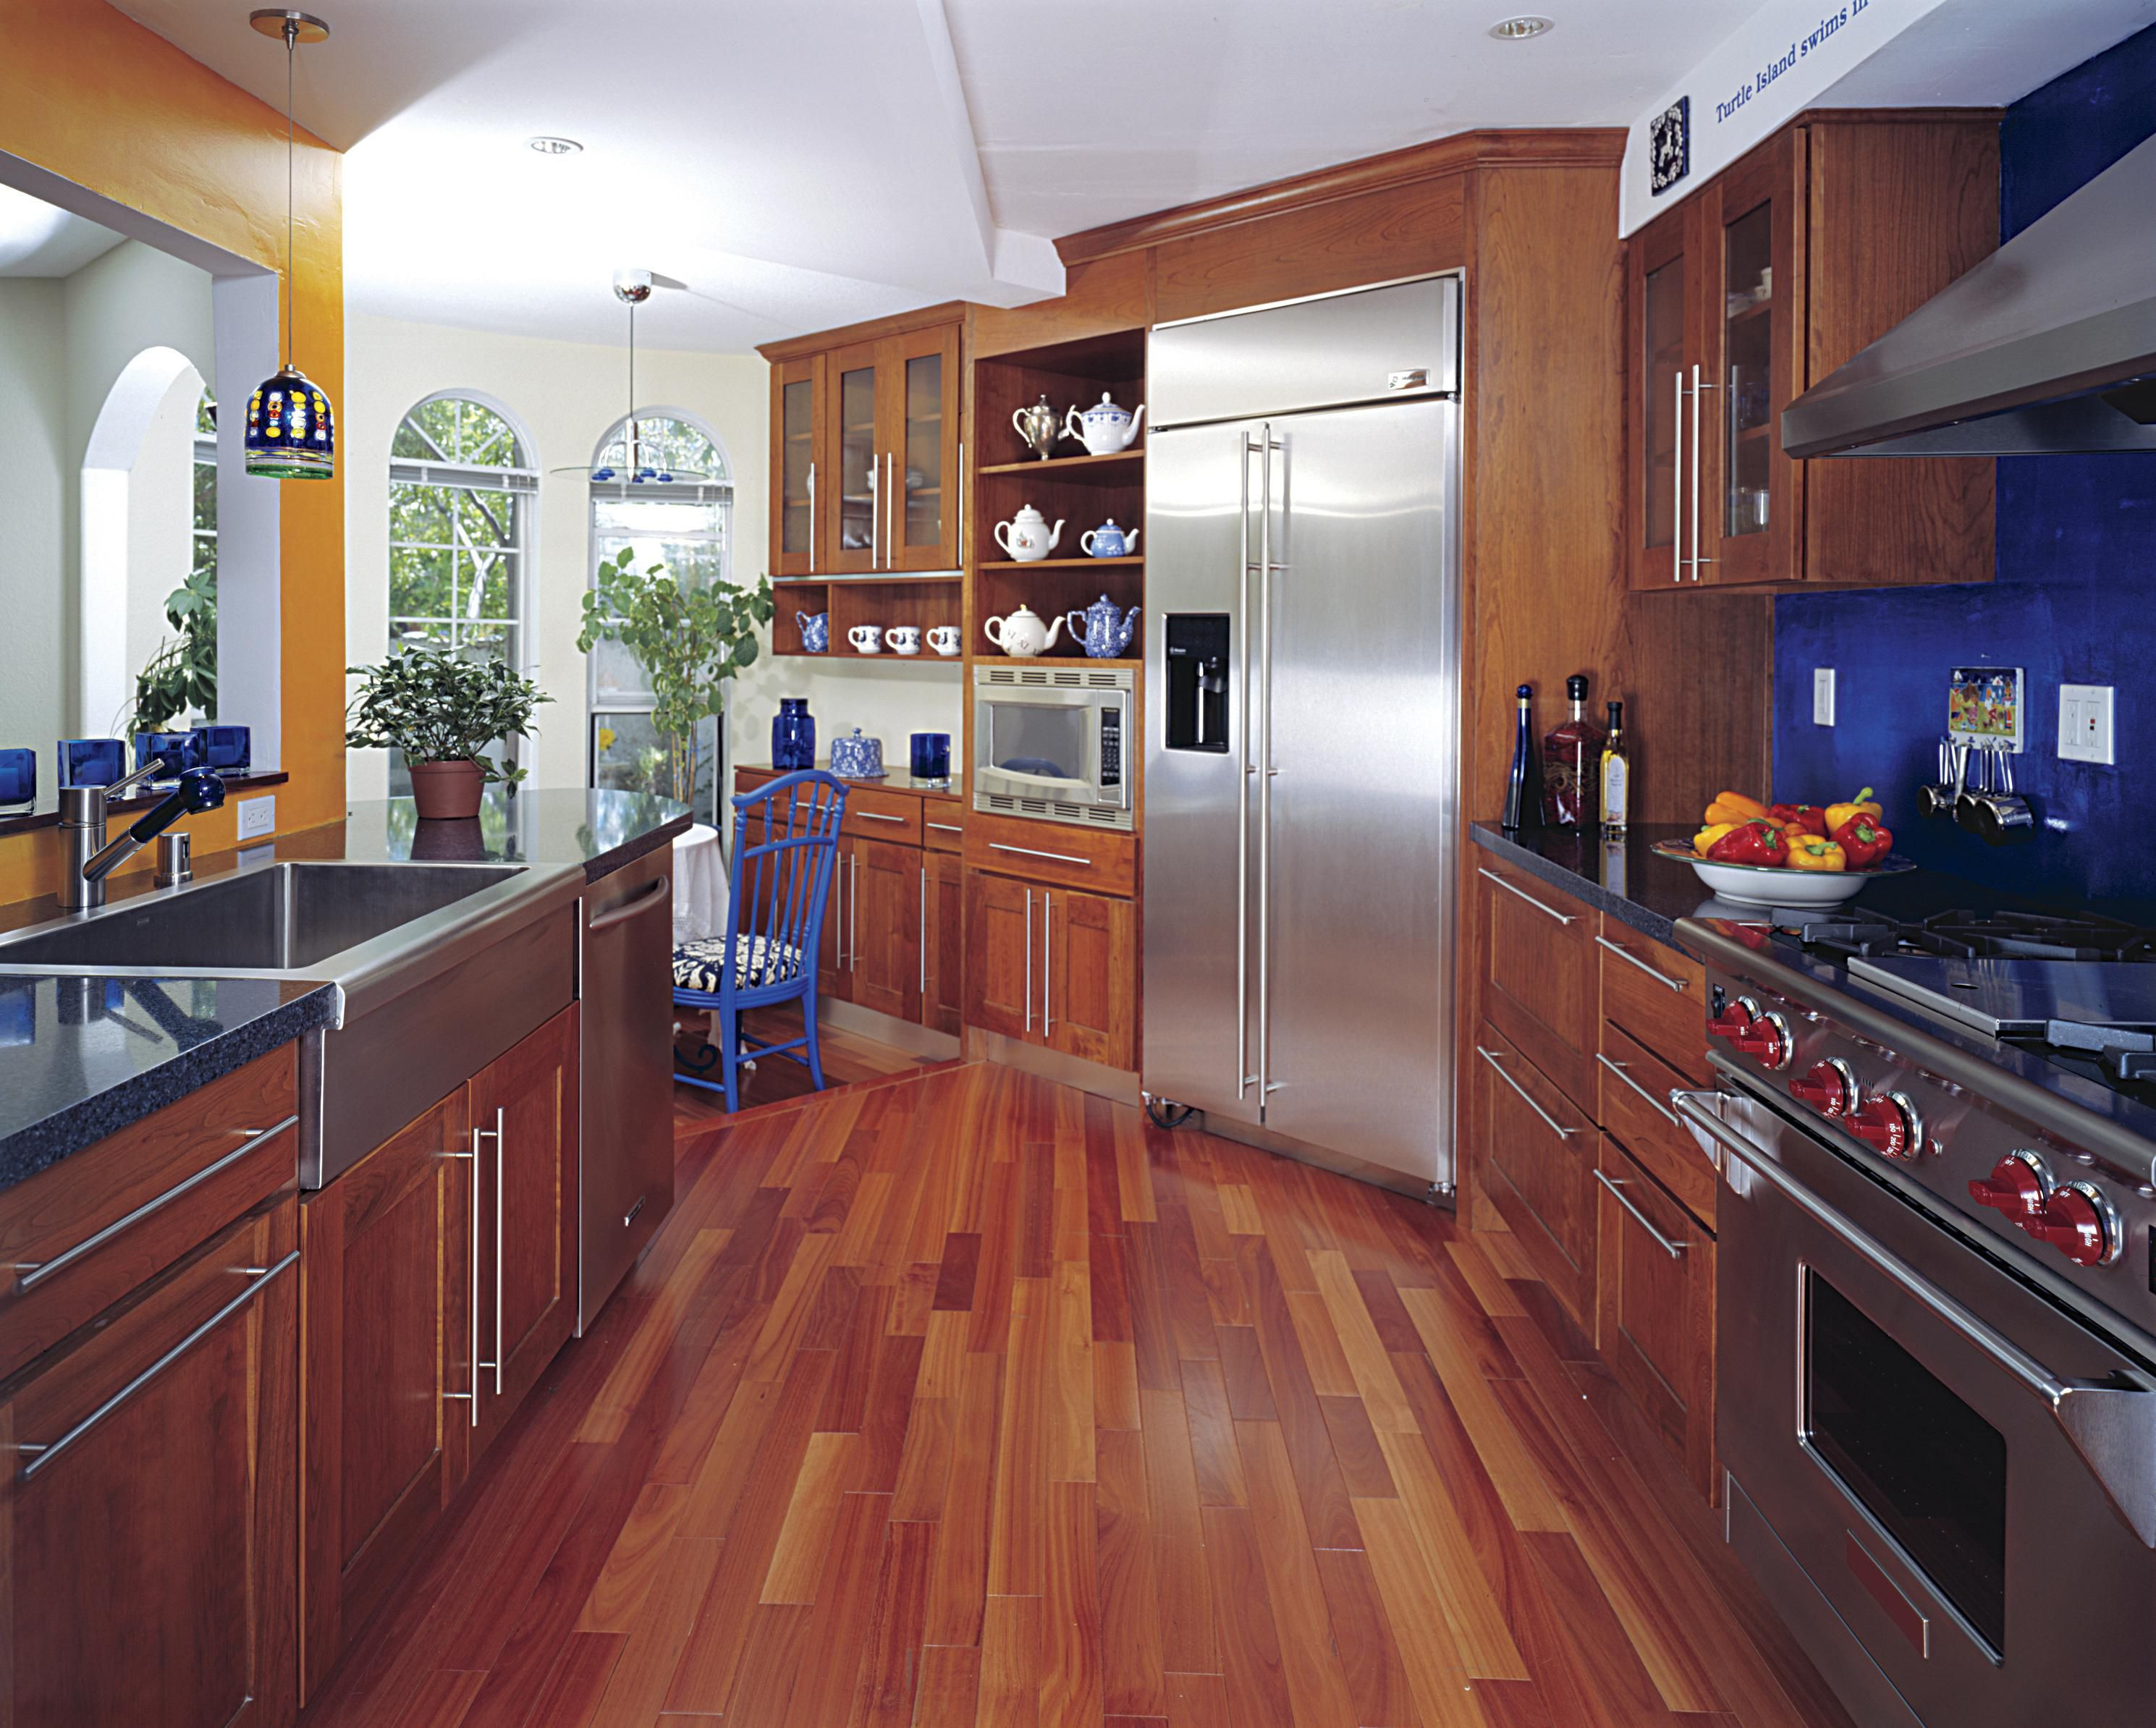 laying hardwood floors diy of hardwood floor in a kitchen is this allowed pertaining to 186828472 56a49f3a5f9b58b7d0d7e142